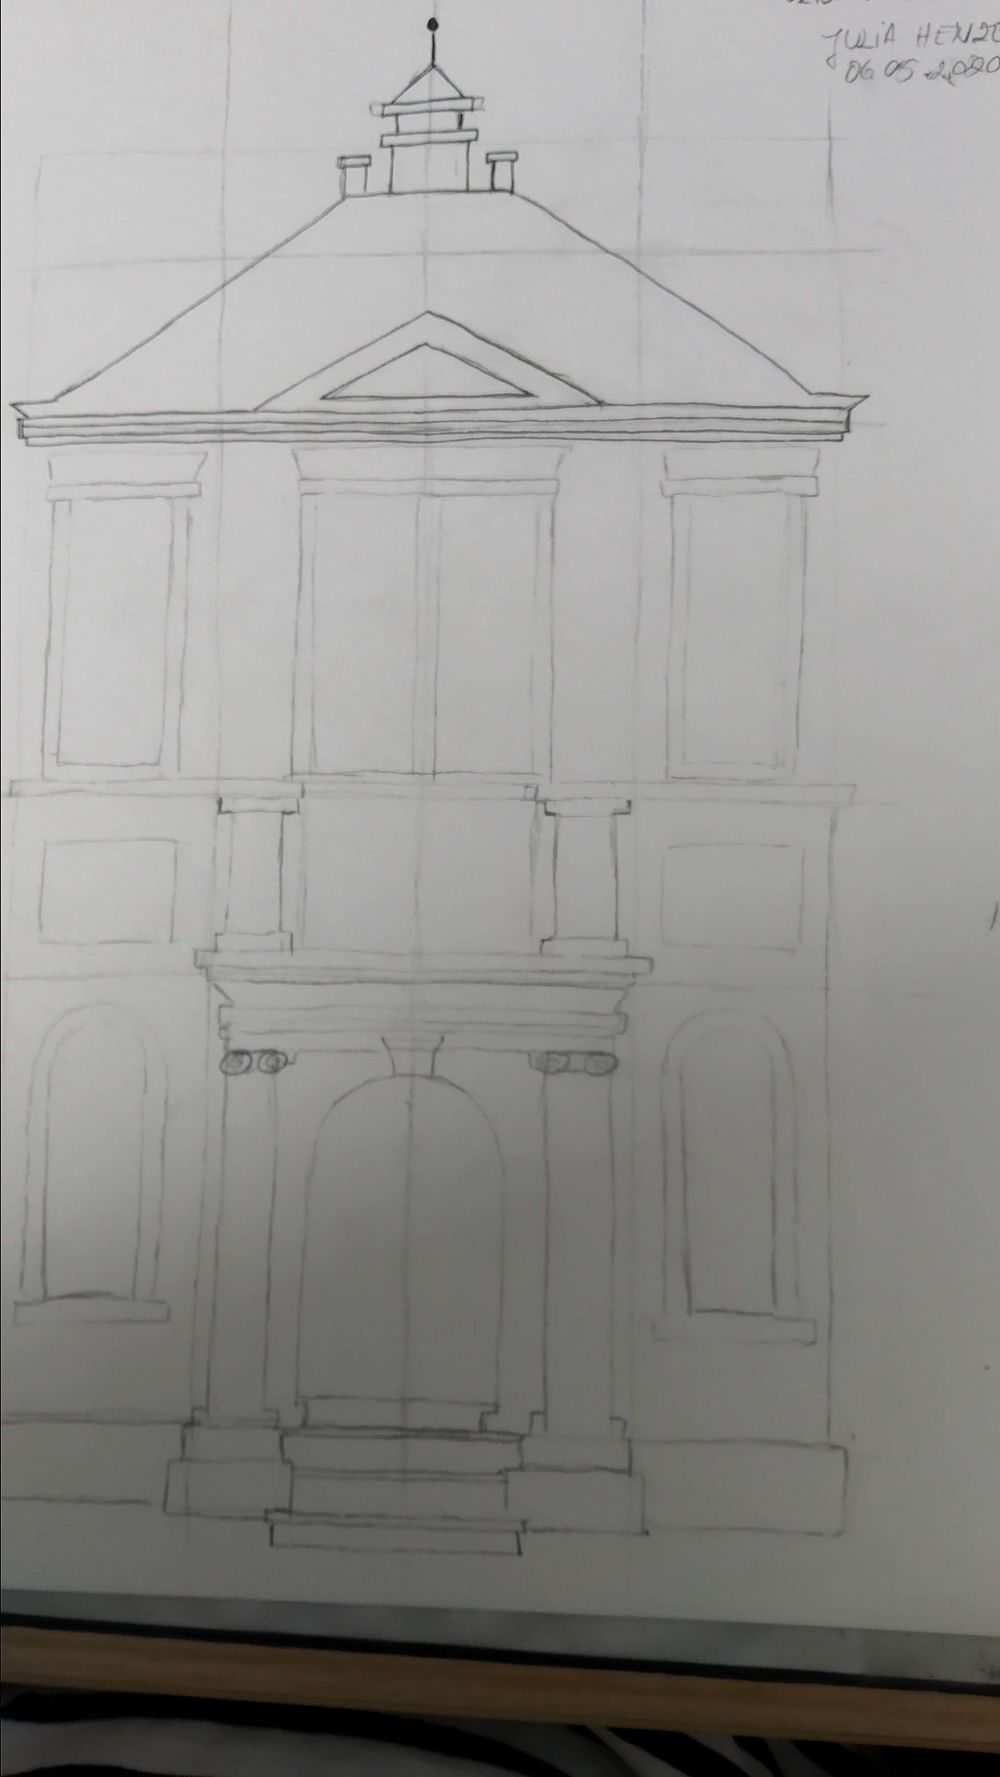 Urban Sketching - image 2 - student project